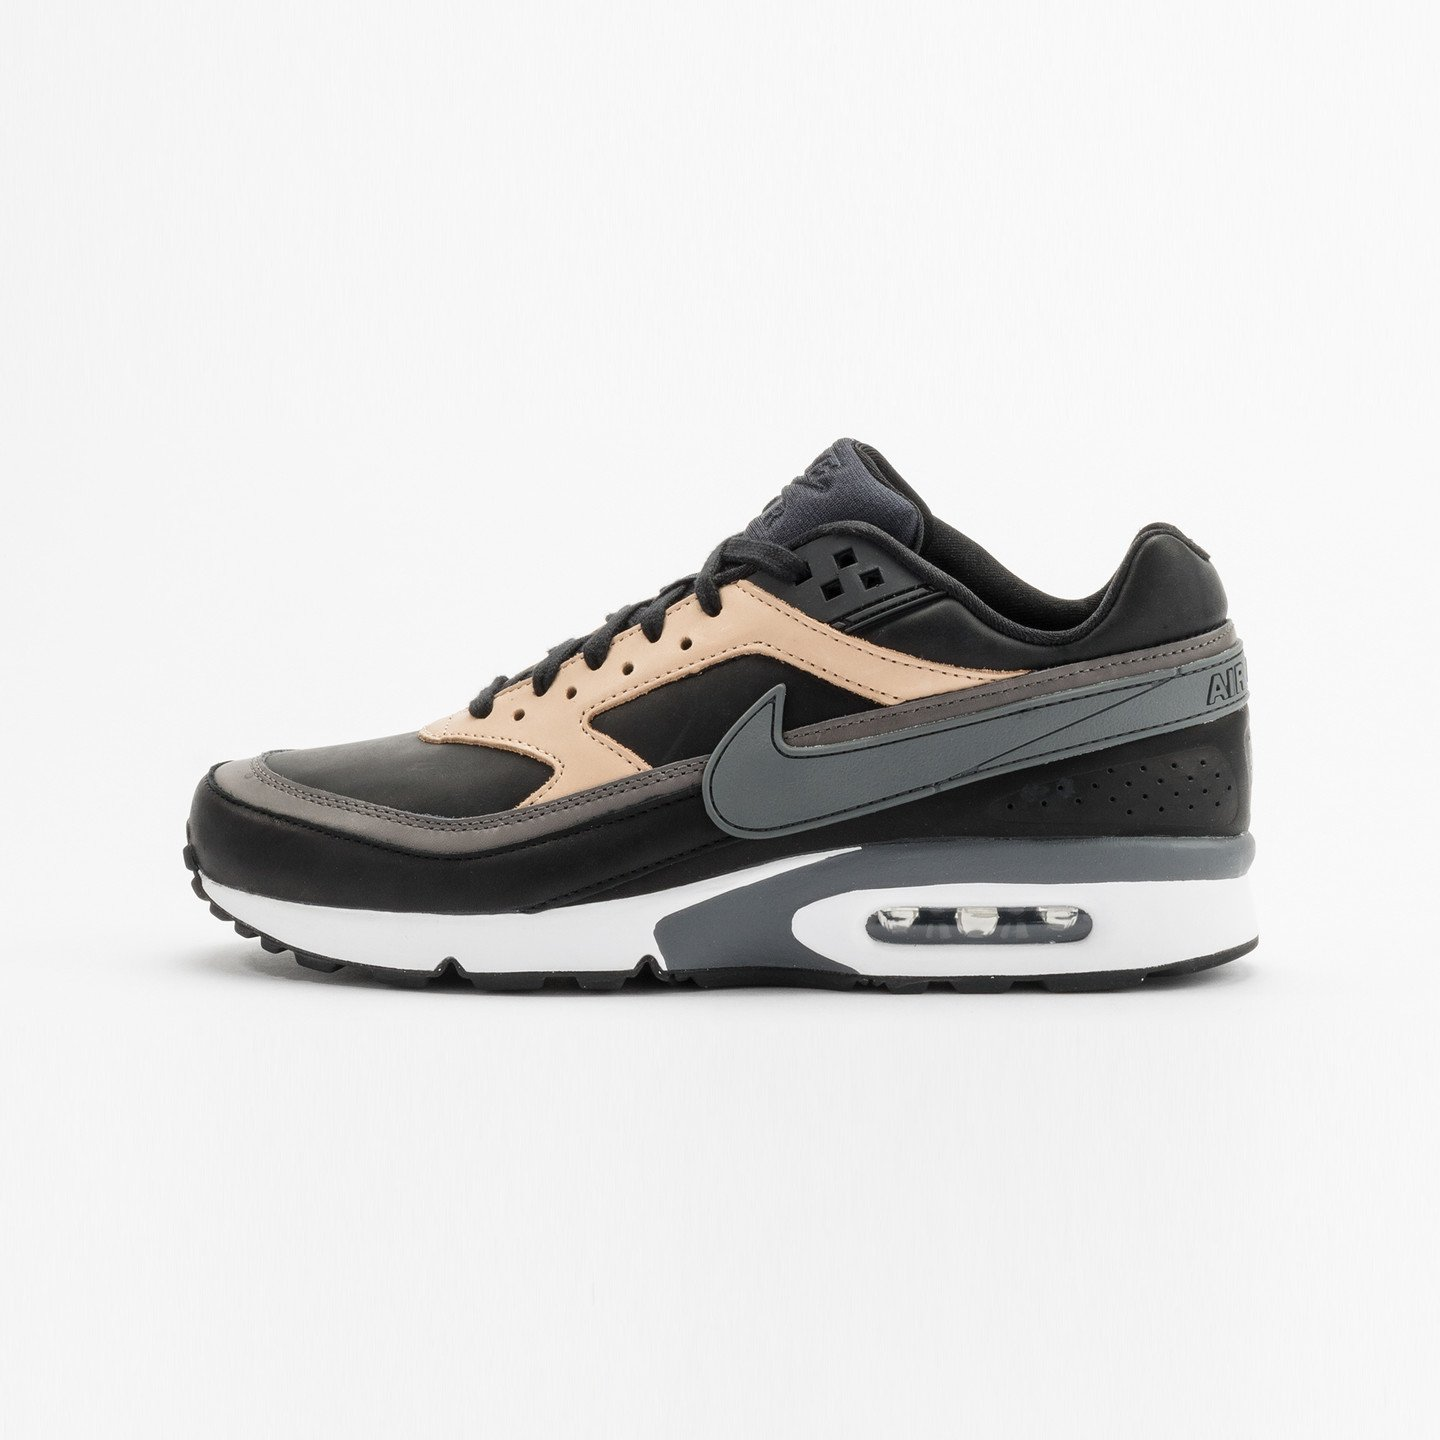 Nike Air Max BW Premium Leather Black / Dark Grey / Vachetta 819523-001-44